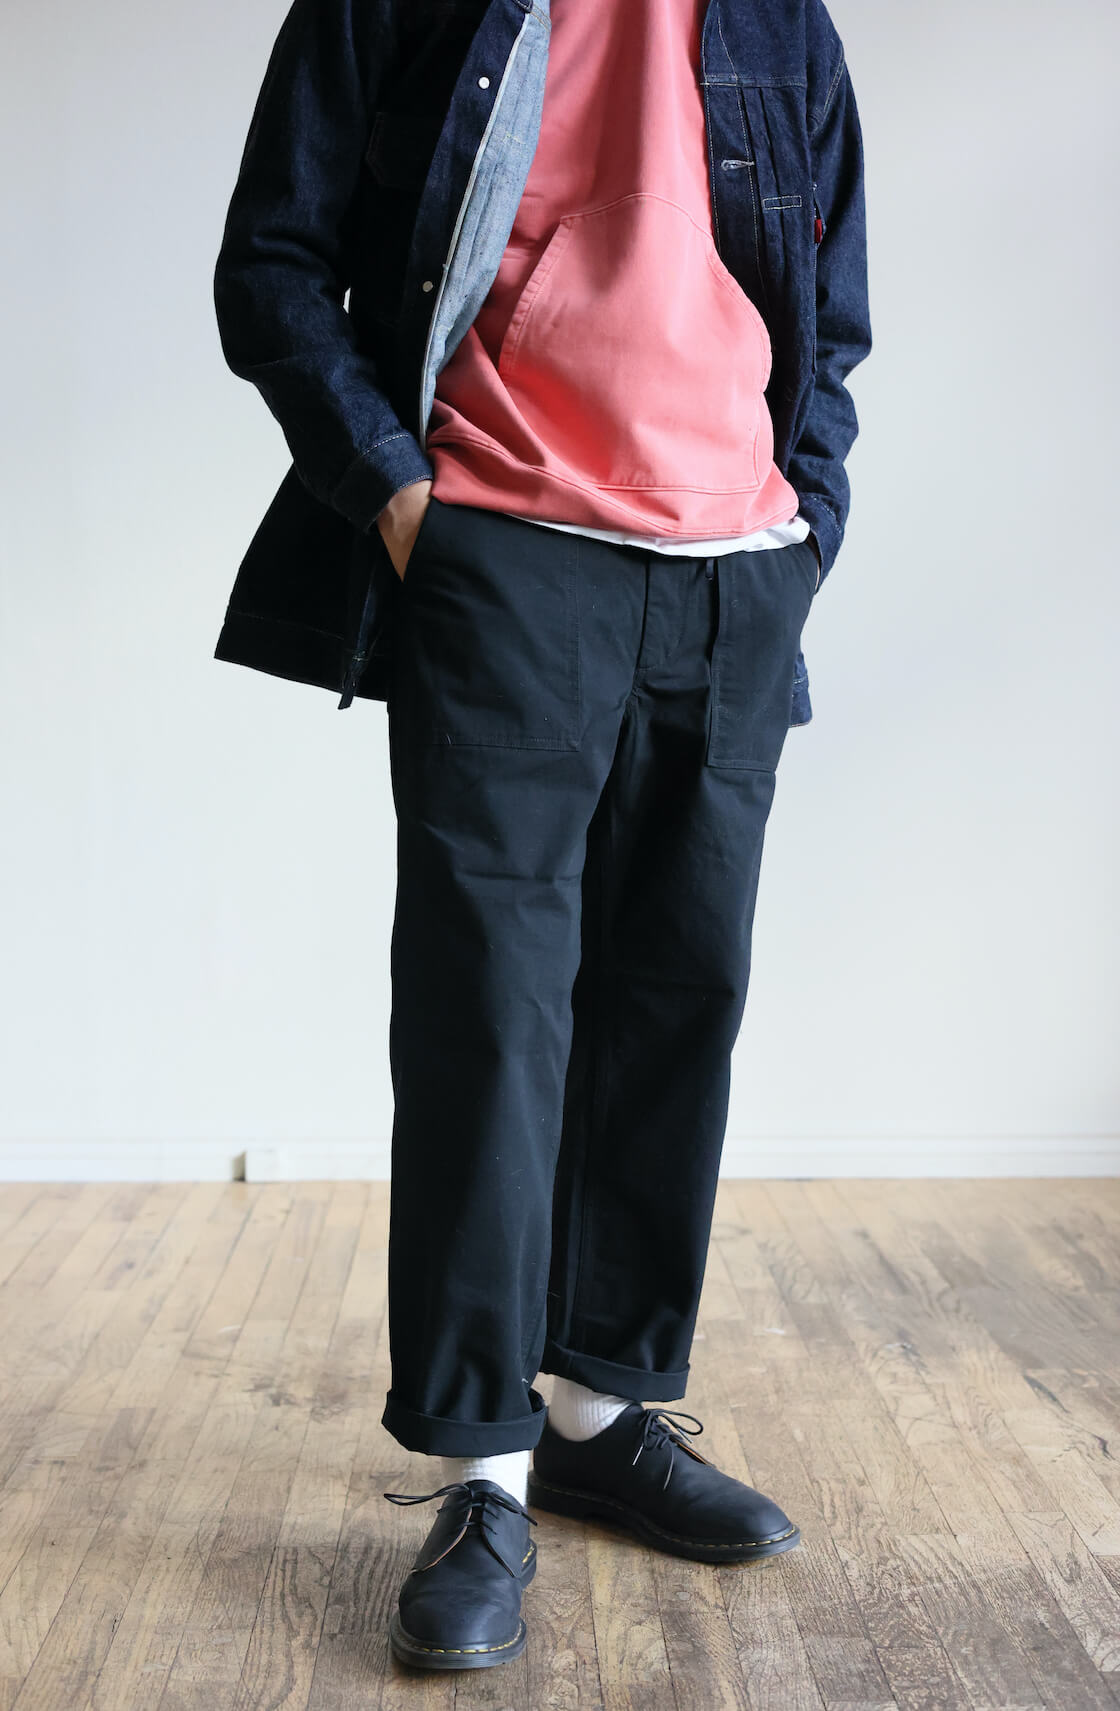 lvc type II long jacket, lady white x canoe club super weighted hoodie, Engineered garments fatigue pant, dr. martens x jjjjound archie II shoes on body